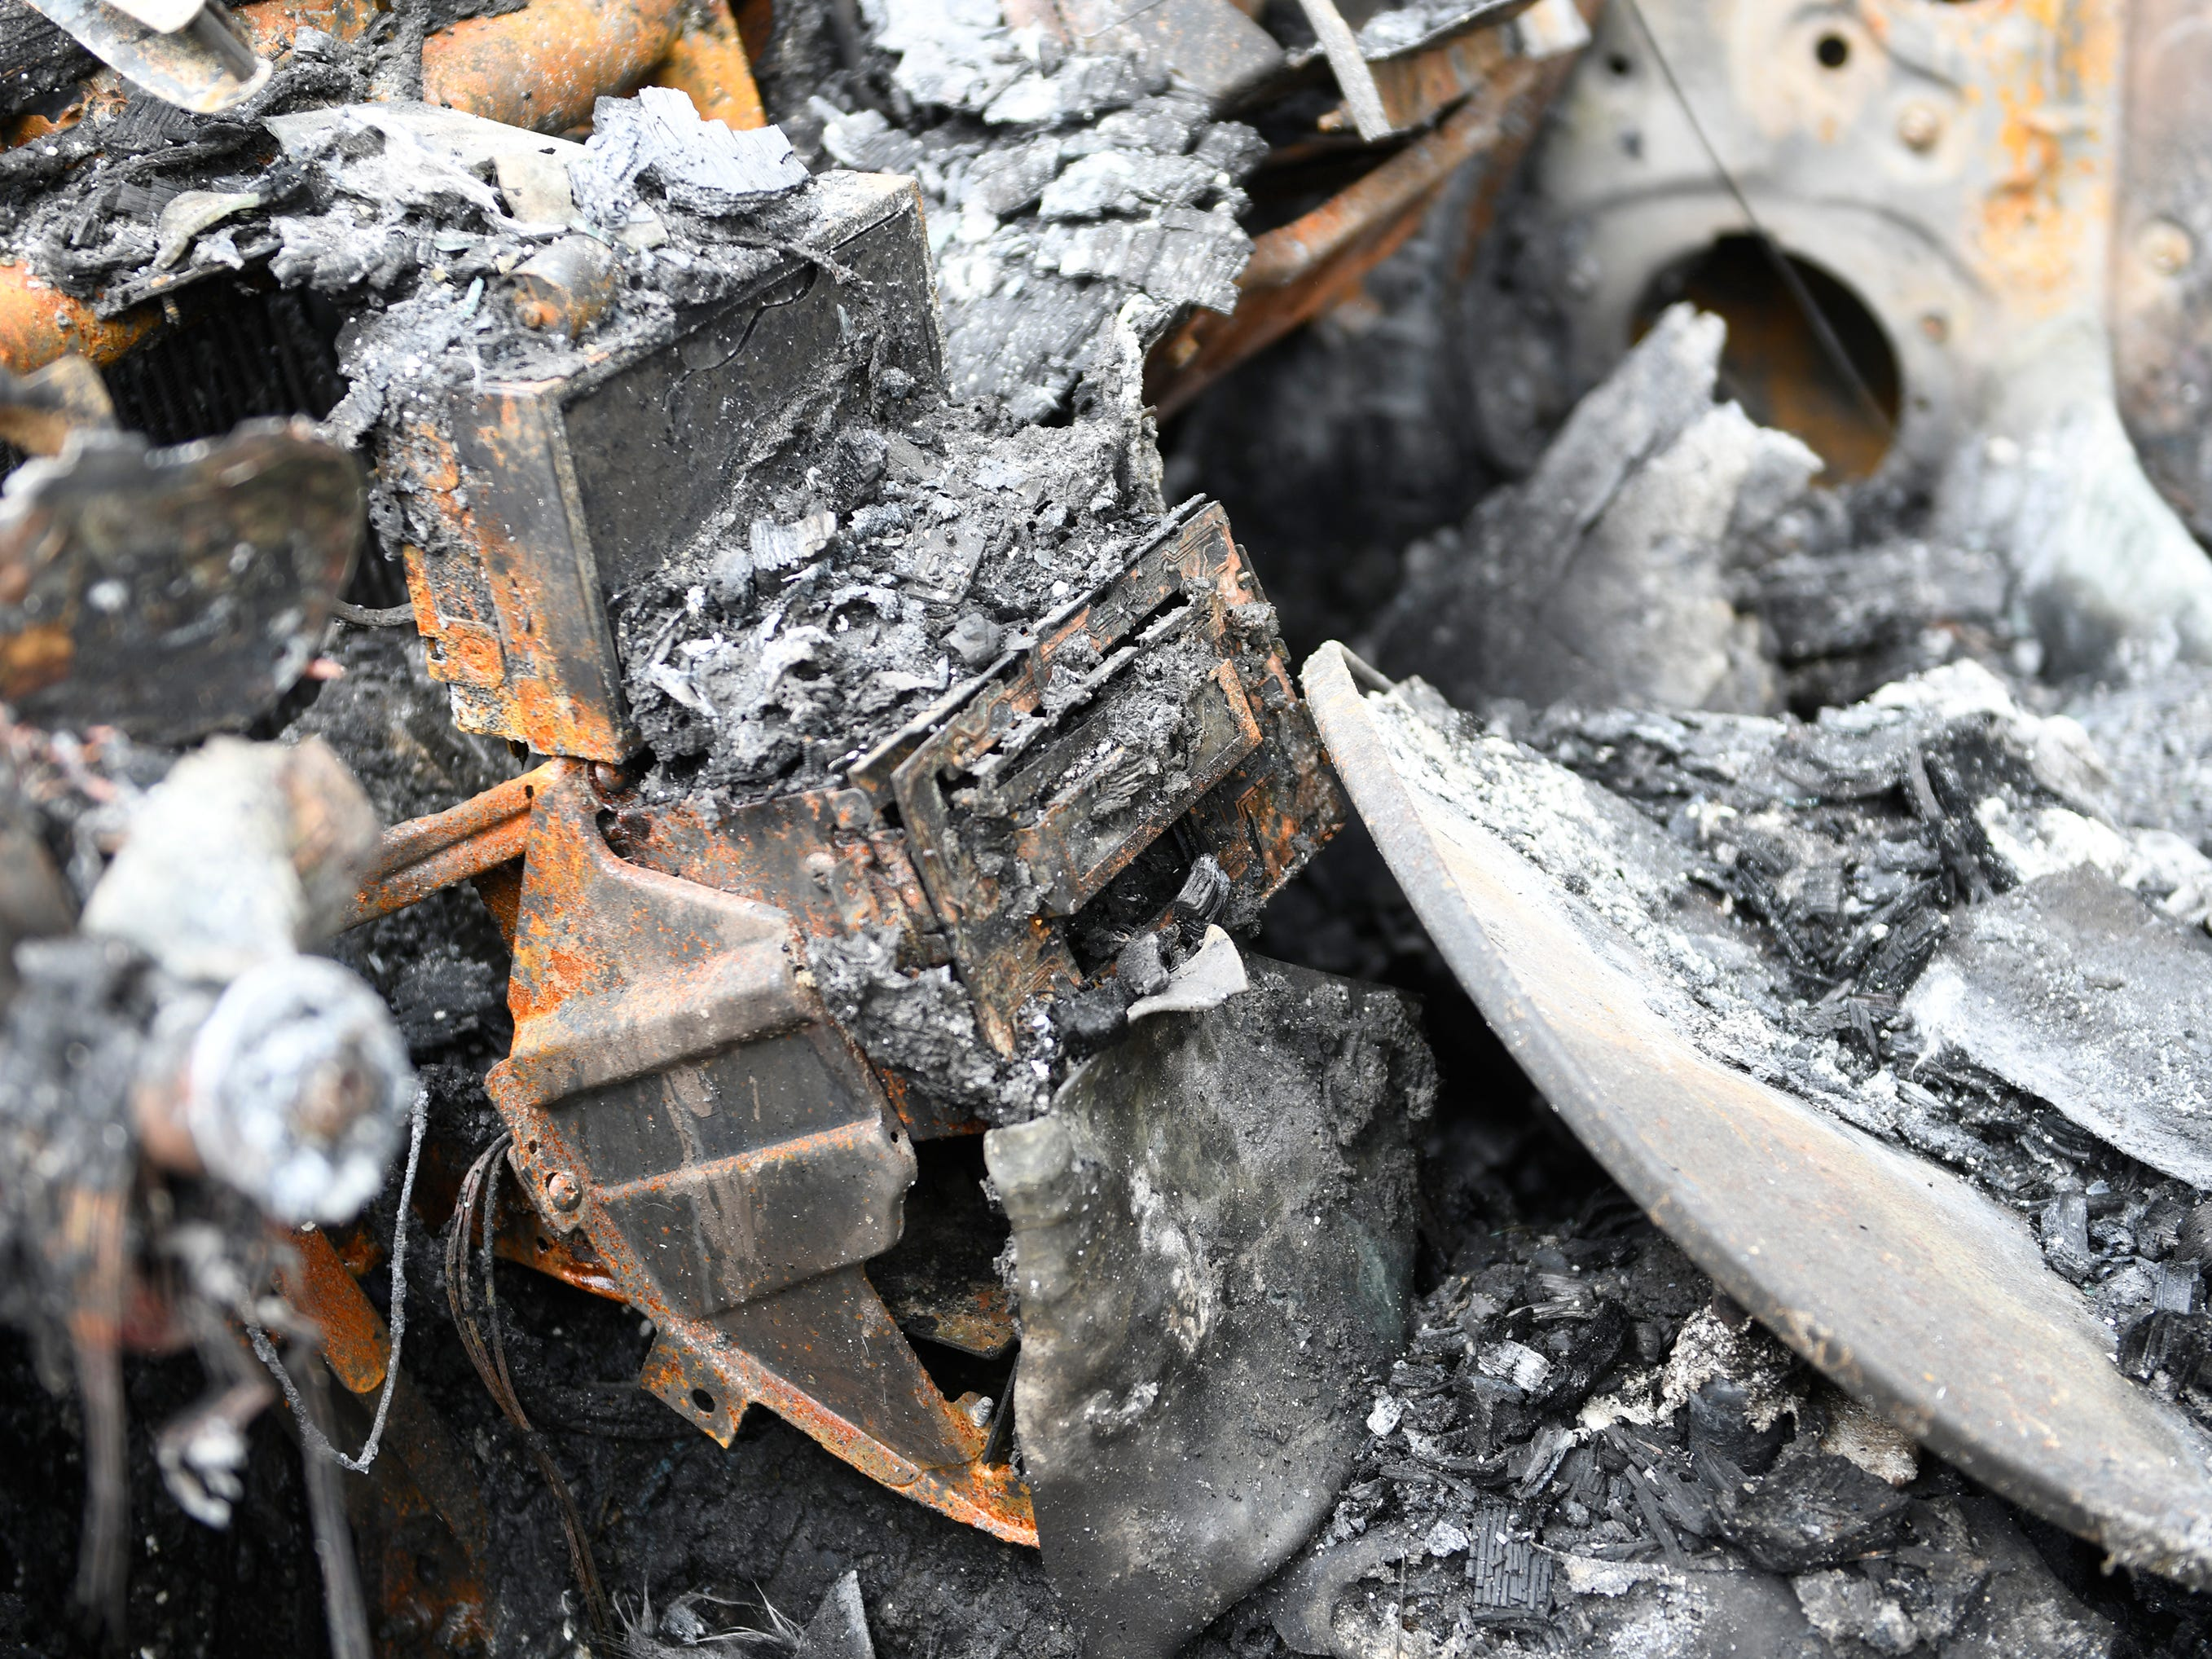 A car radio is barely recognized following Monday's house fire in Vineland.